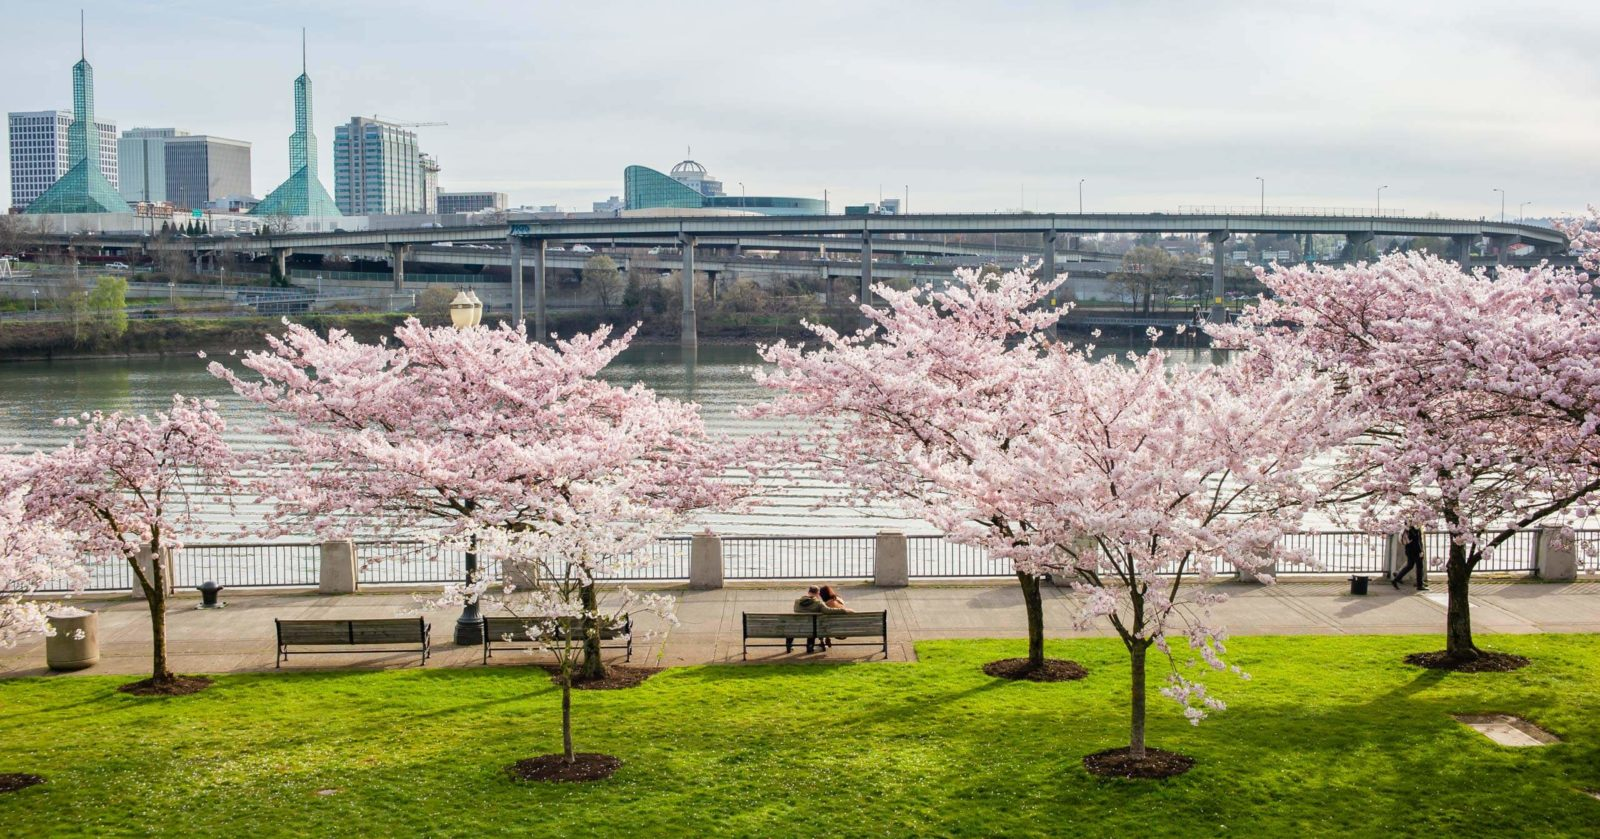 Portland Waterfront with Cherry Blossom trees